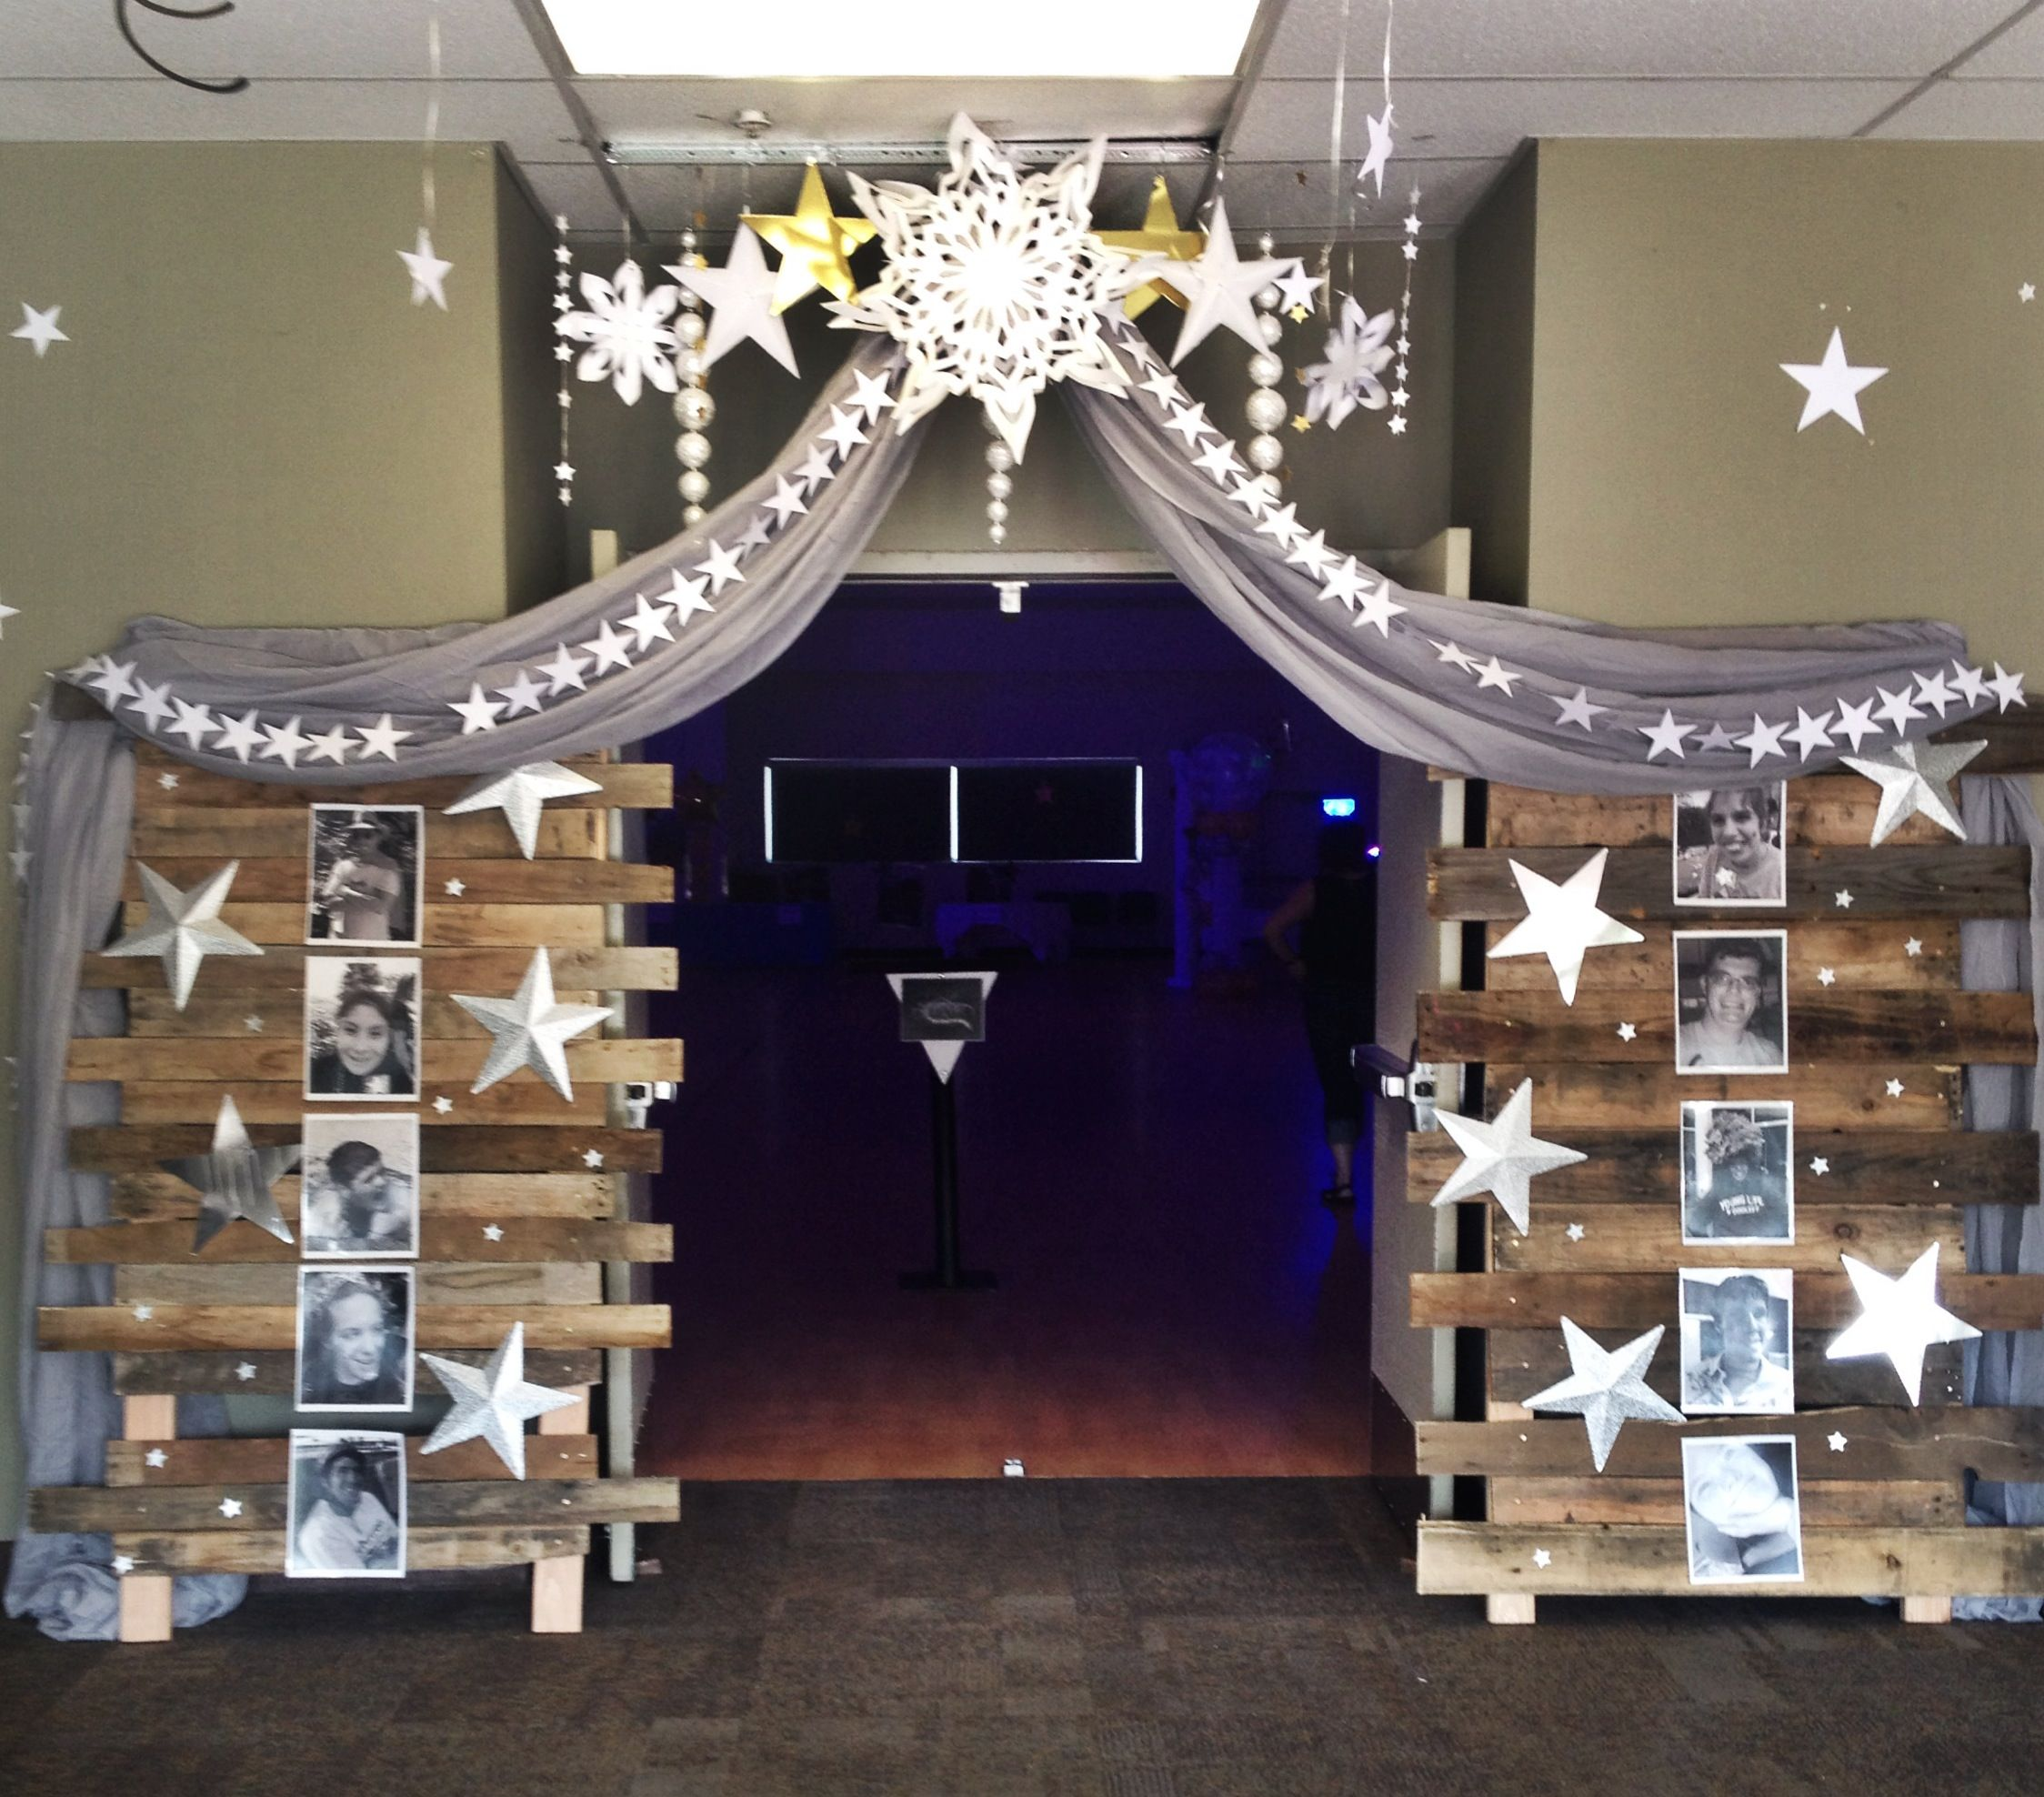 60 Diy Wedding Decoration Ideas: Prom Theme: Shining Stars Decorations: By Lynette Harper